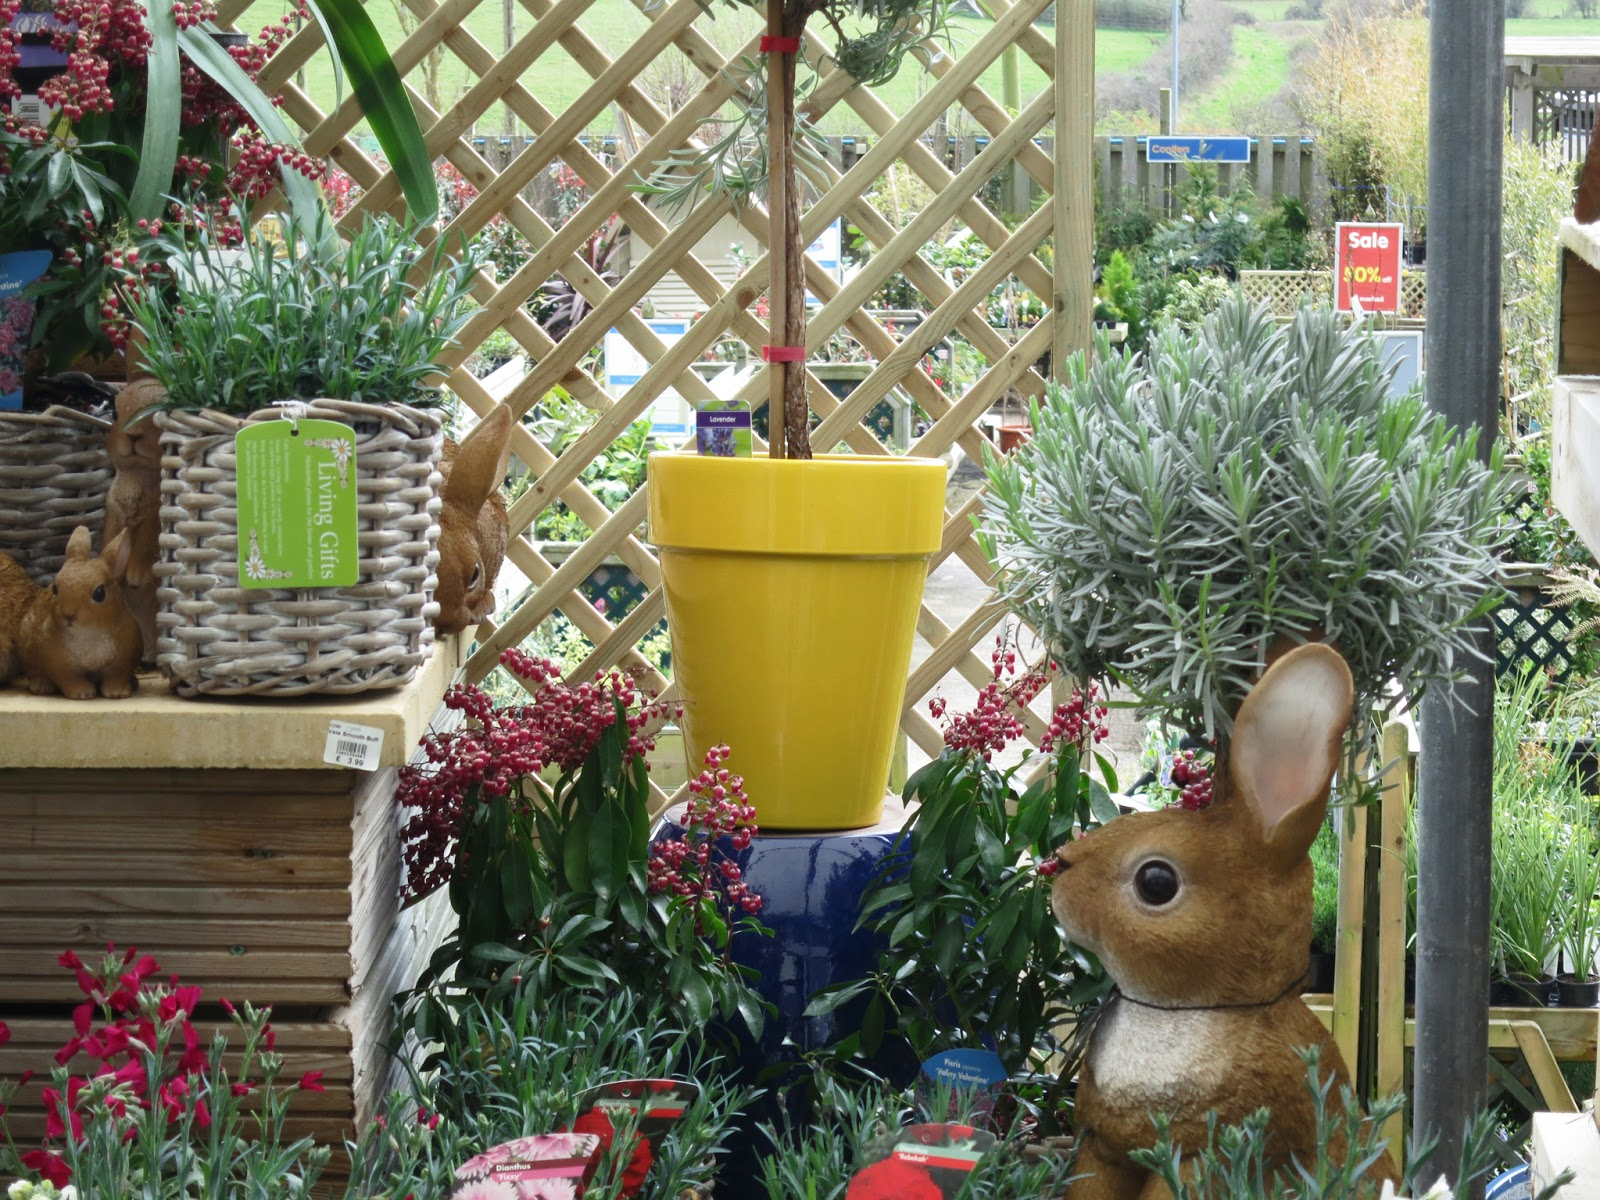 Ornamental rabbit and yellow pot in garden centre display